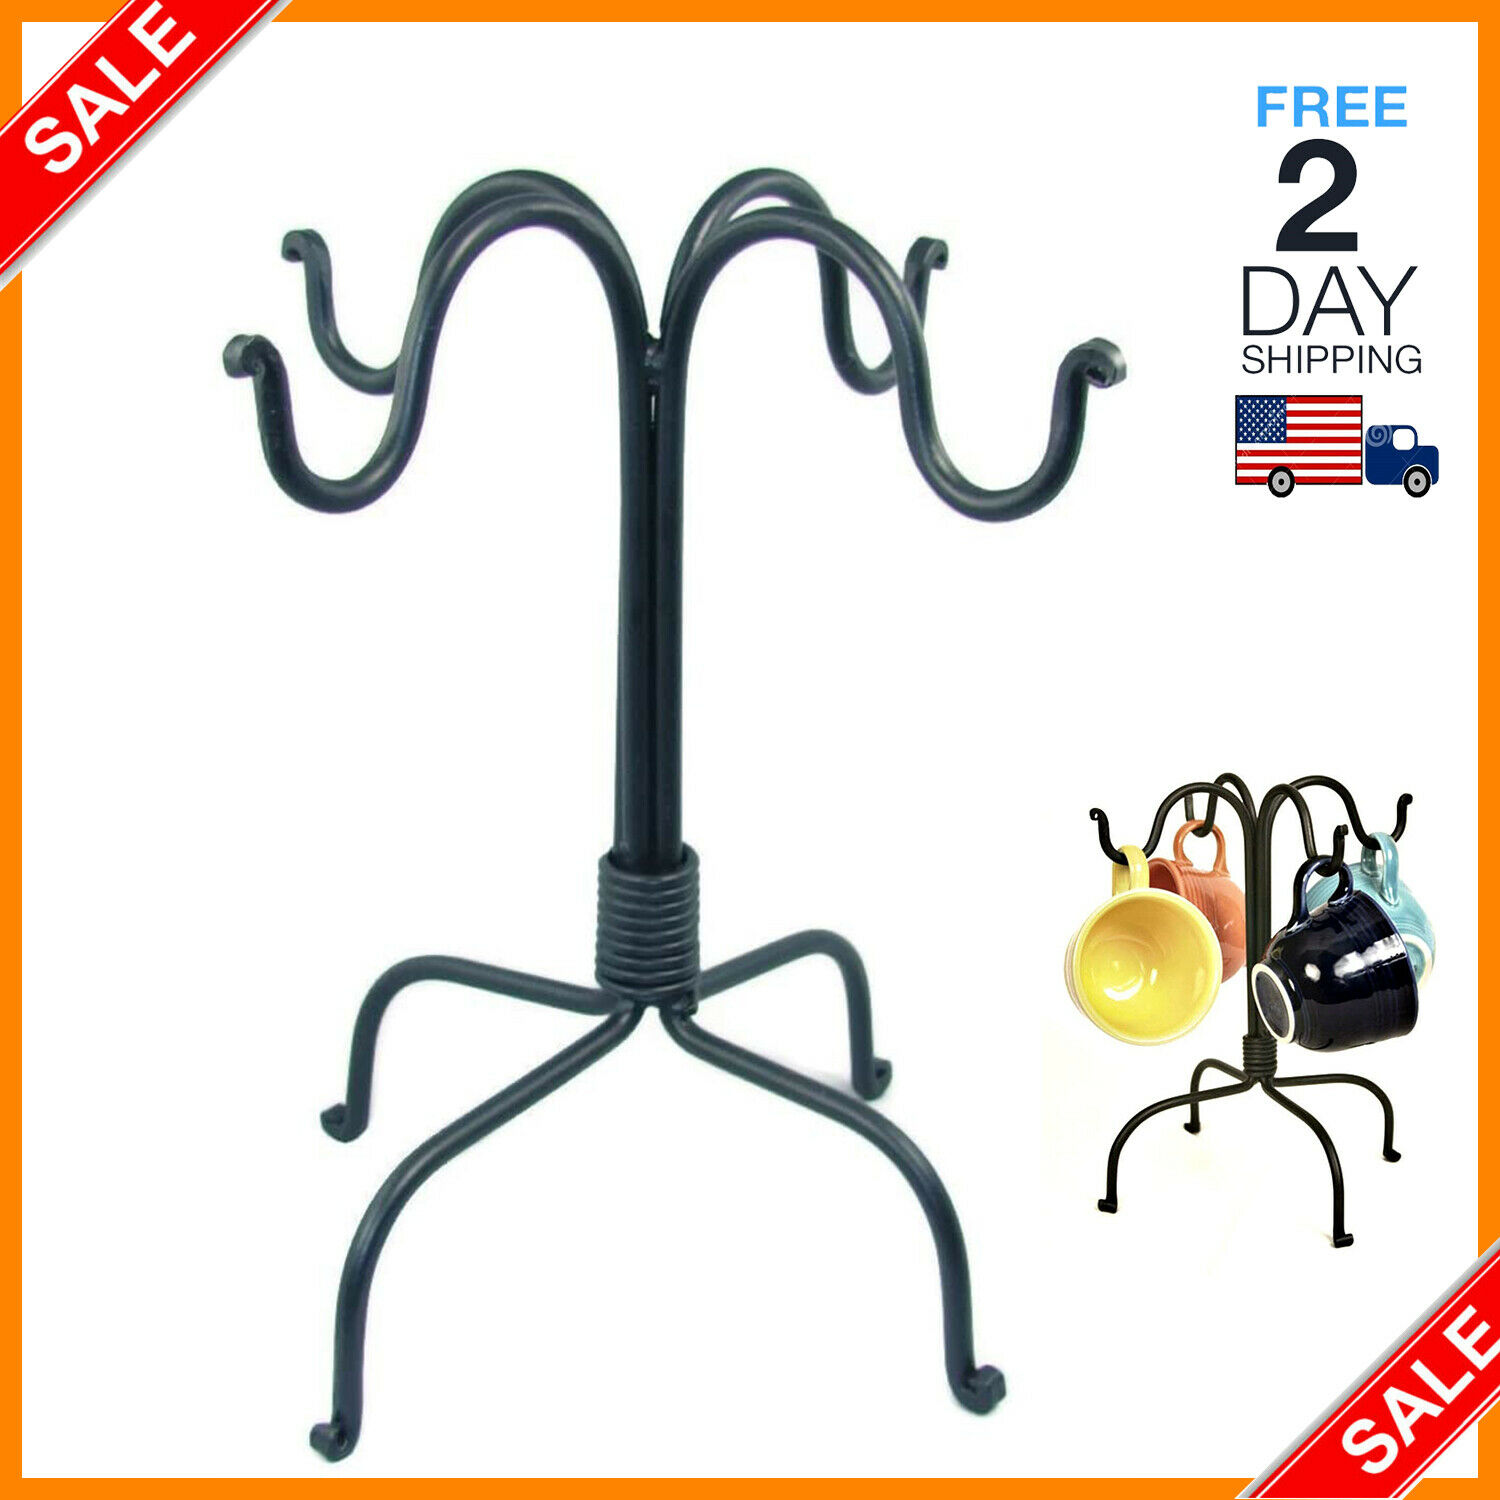 Countertop Coffee Mug Cup Tree Holder By Home Basics Bronze New For Sale Online Ebay